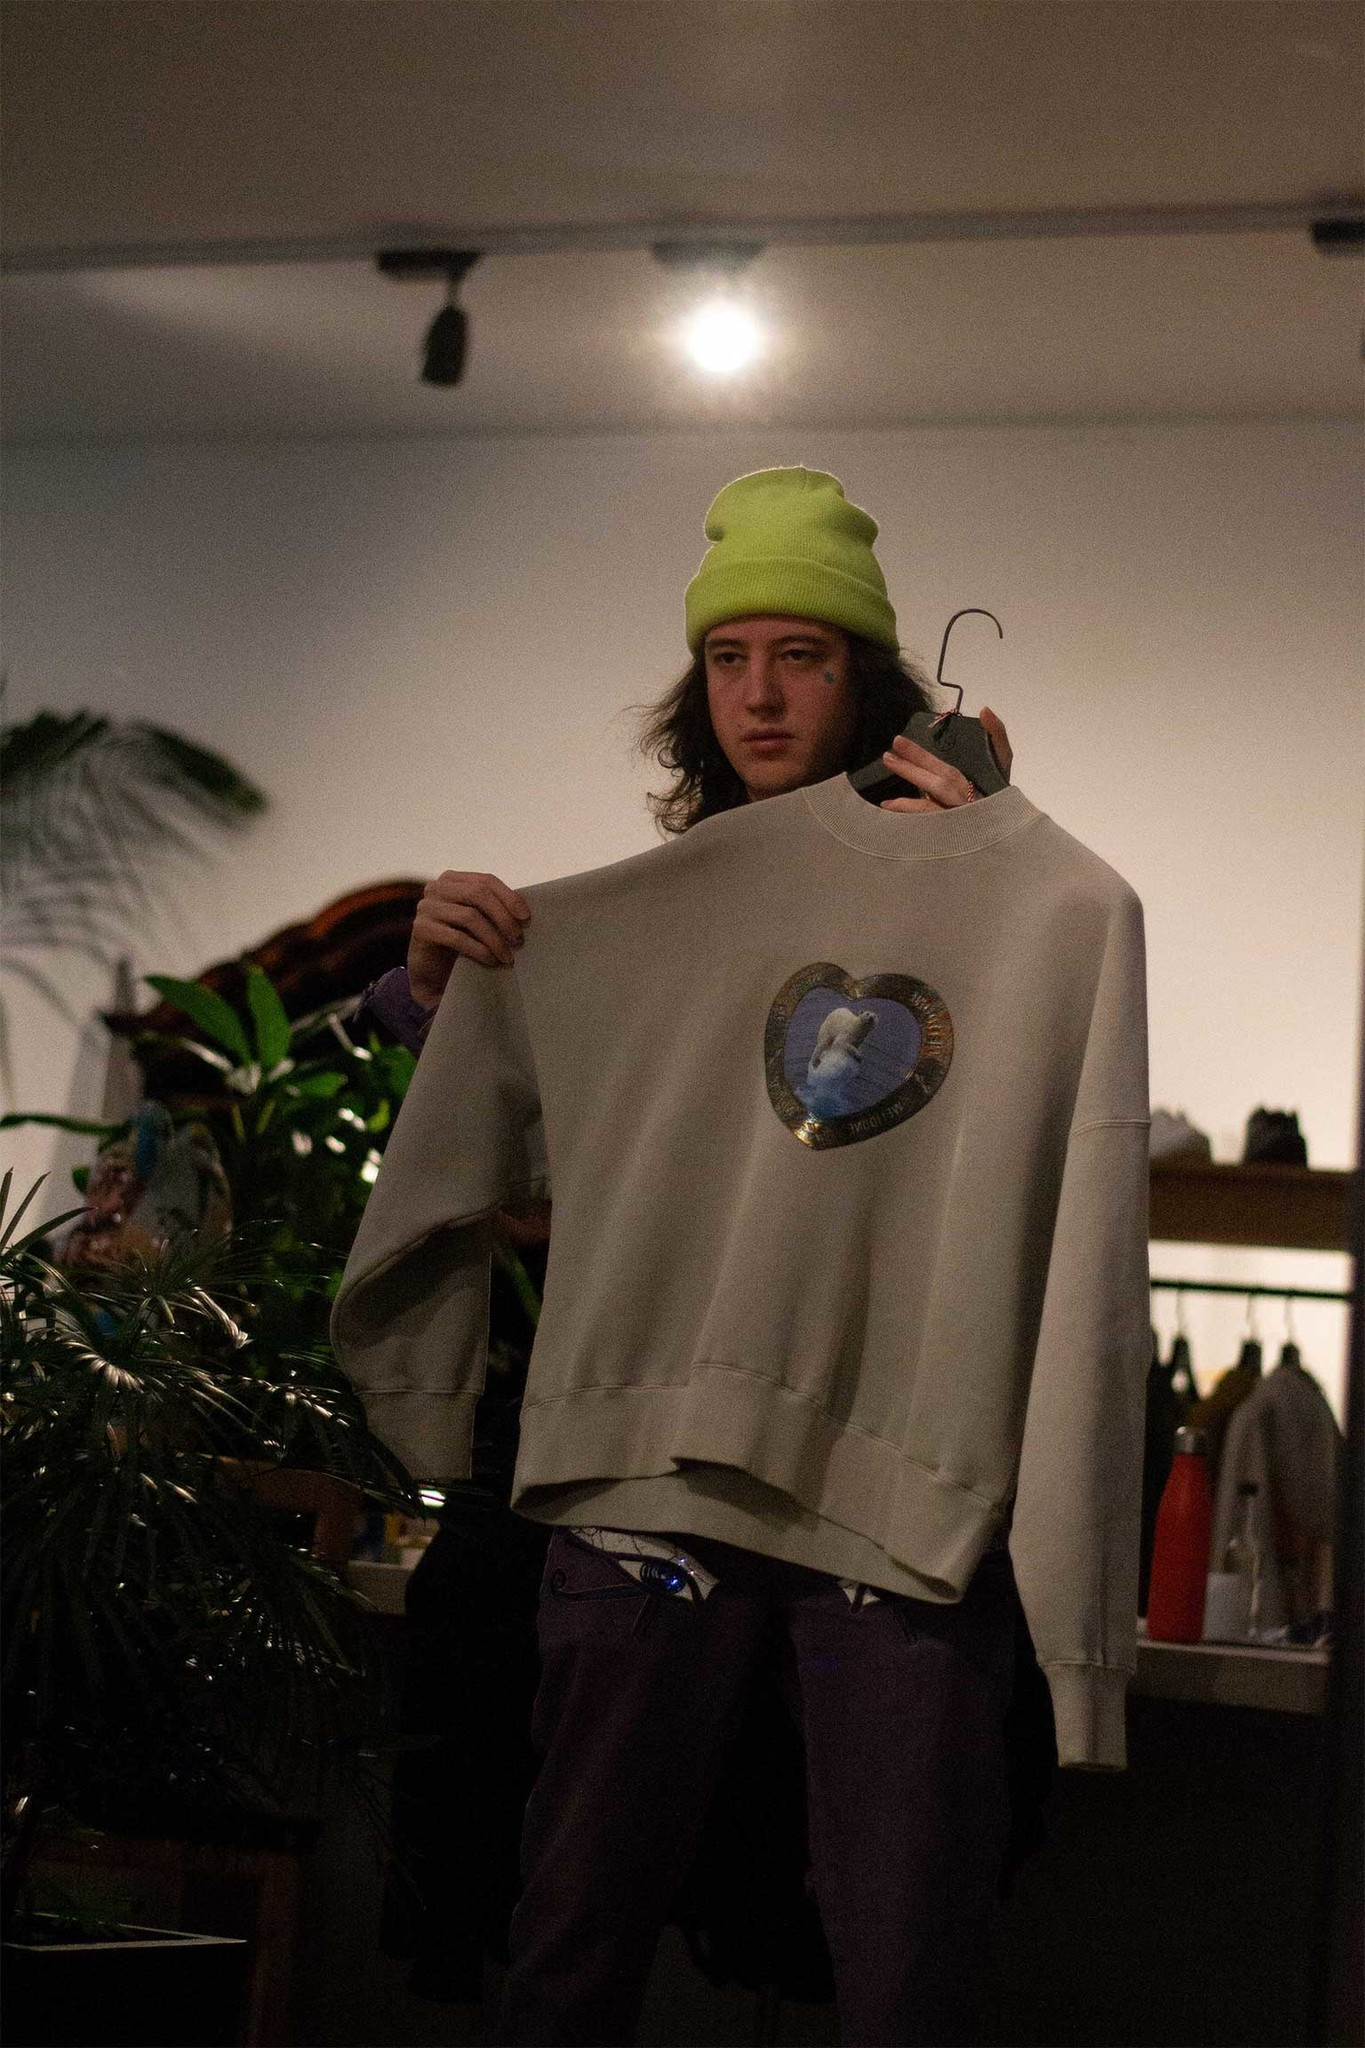 staff member holds a sweater in front of him while looking in the mirror